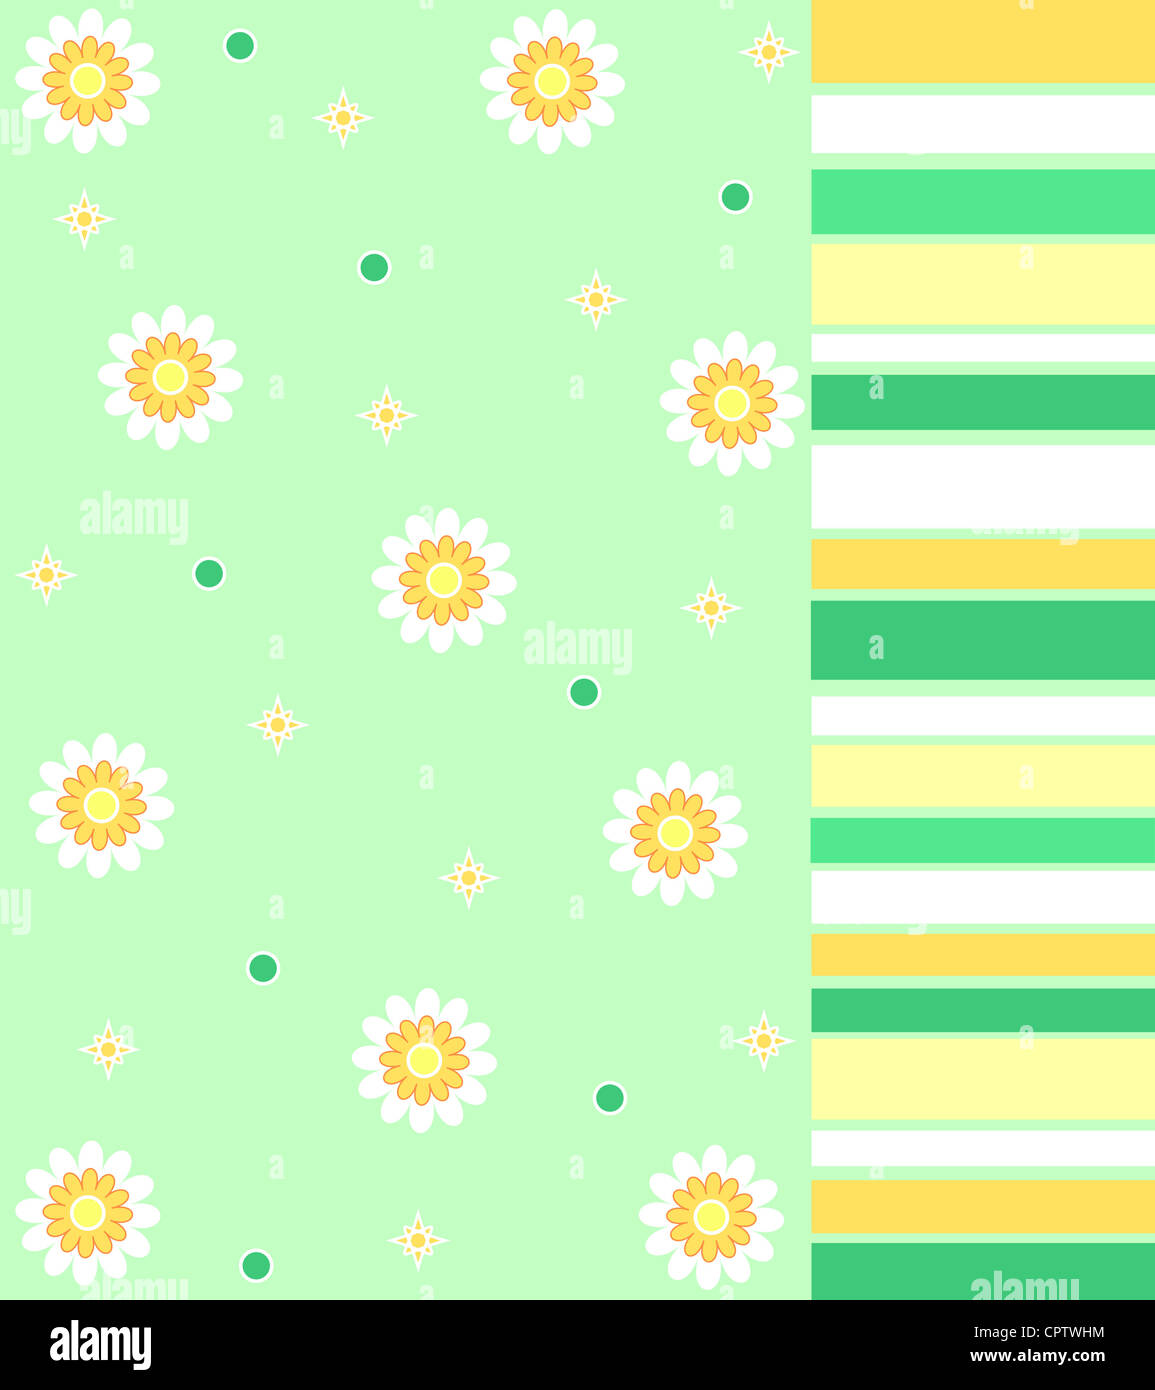 Floral and stripes pattern in white, green and yellow Stock Photo